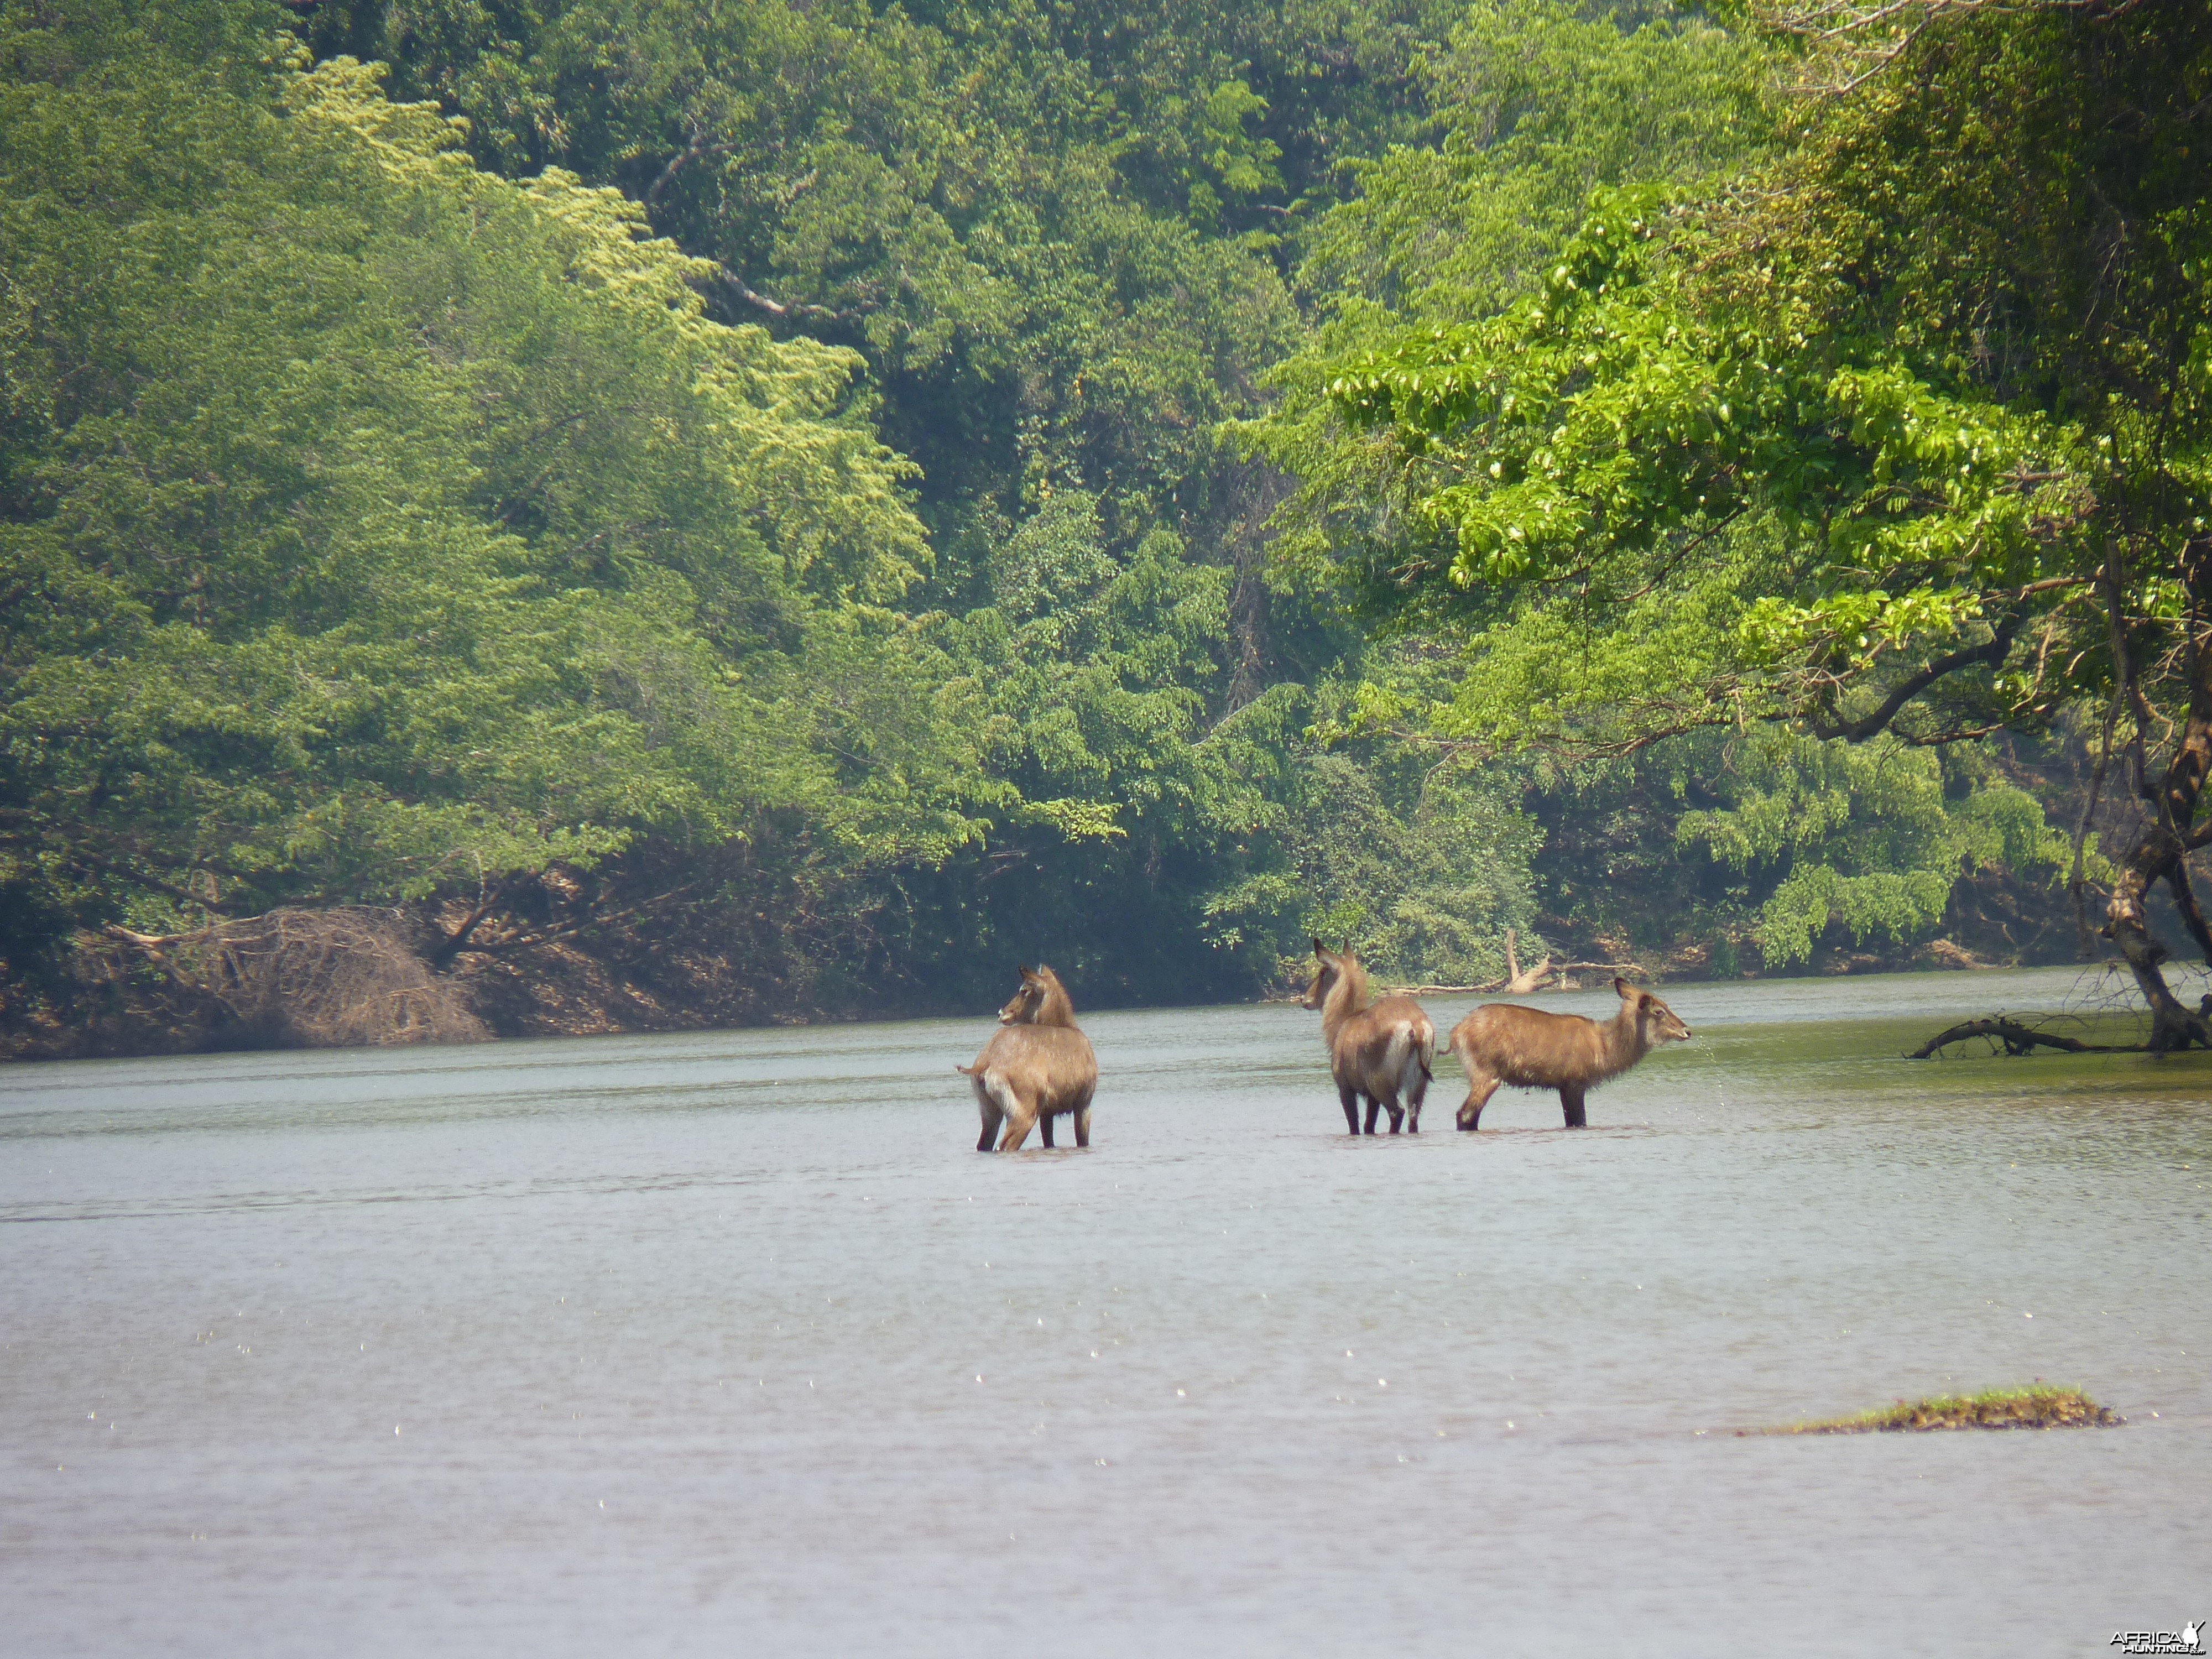 Waterbucks in Central African Republic